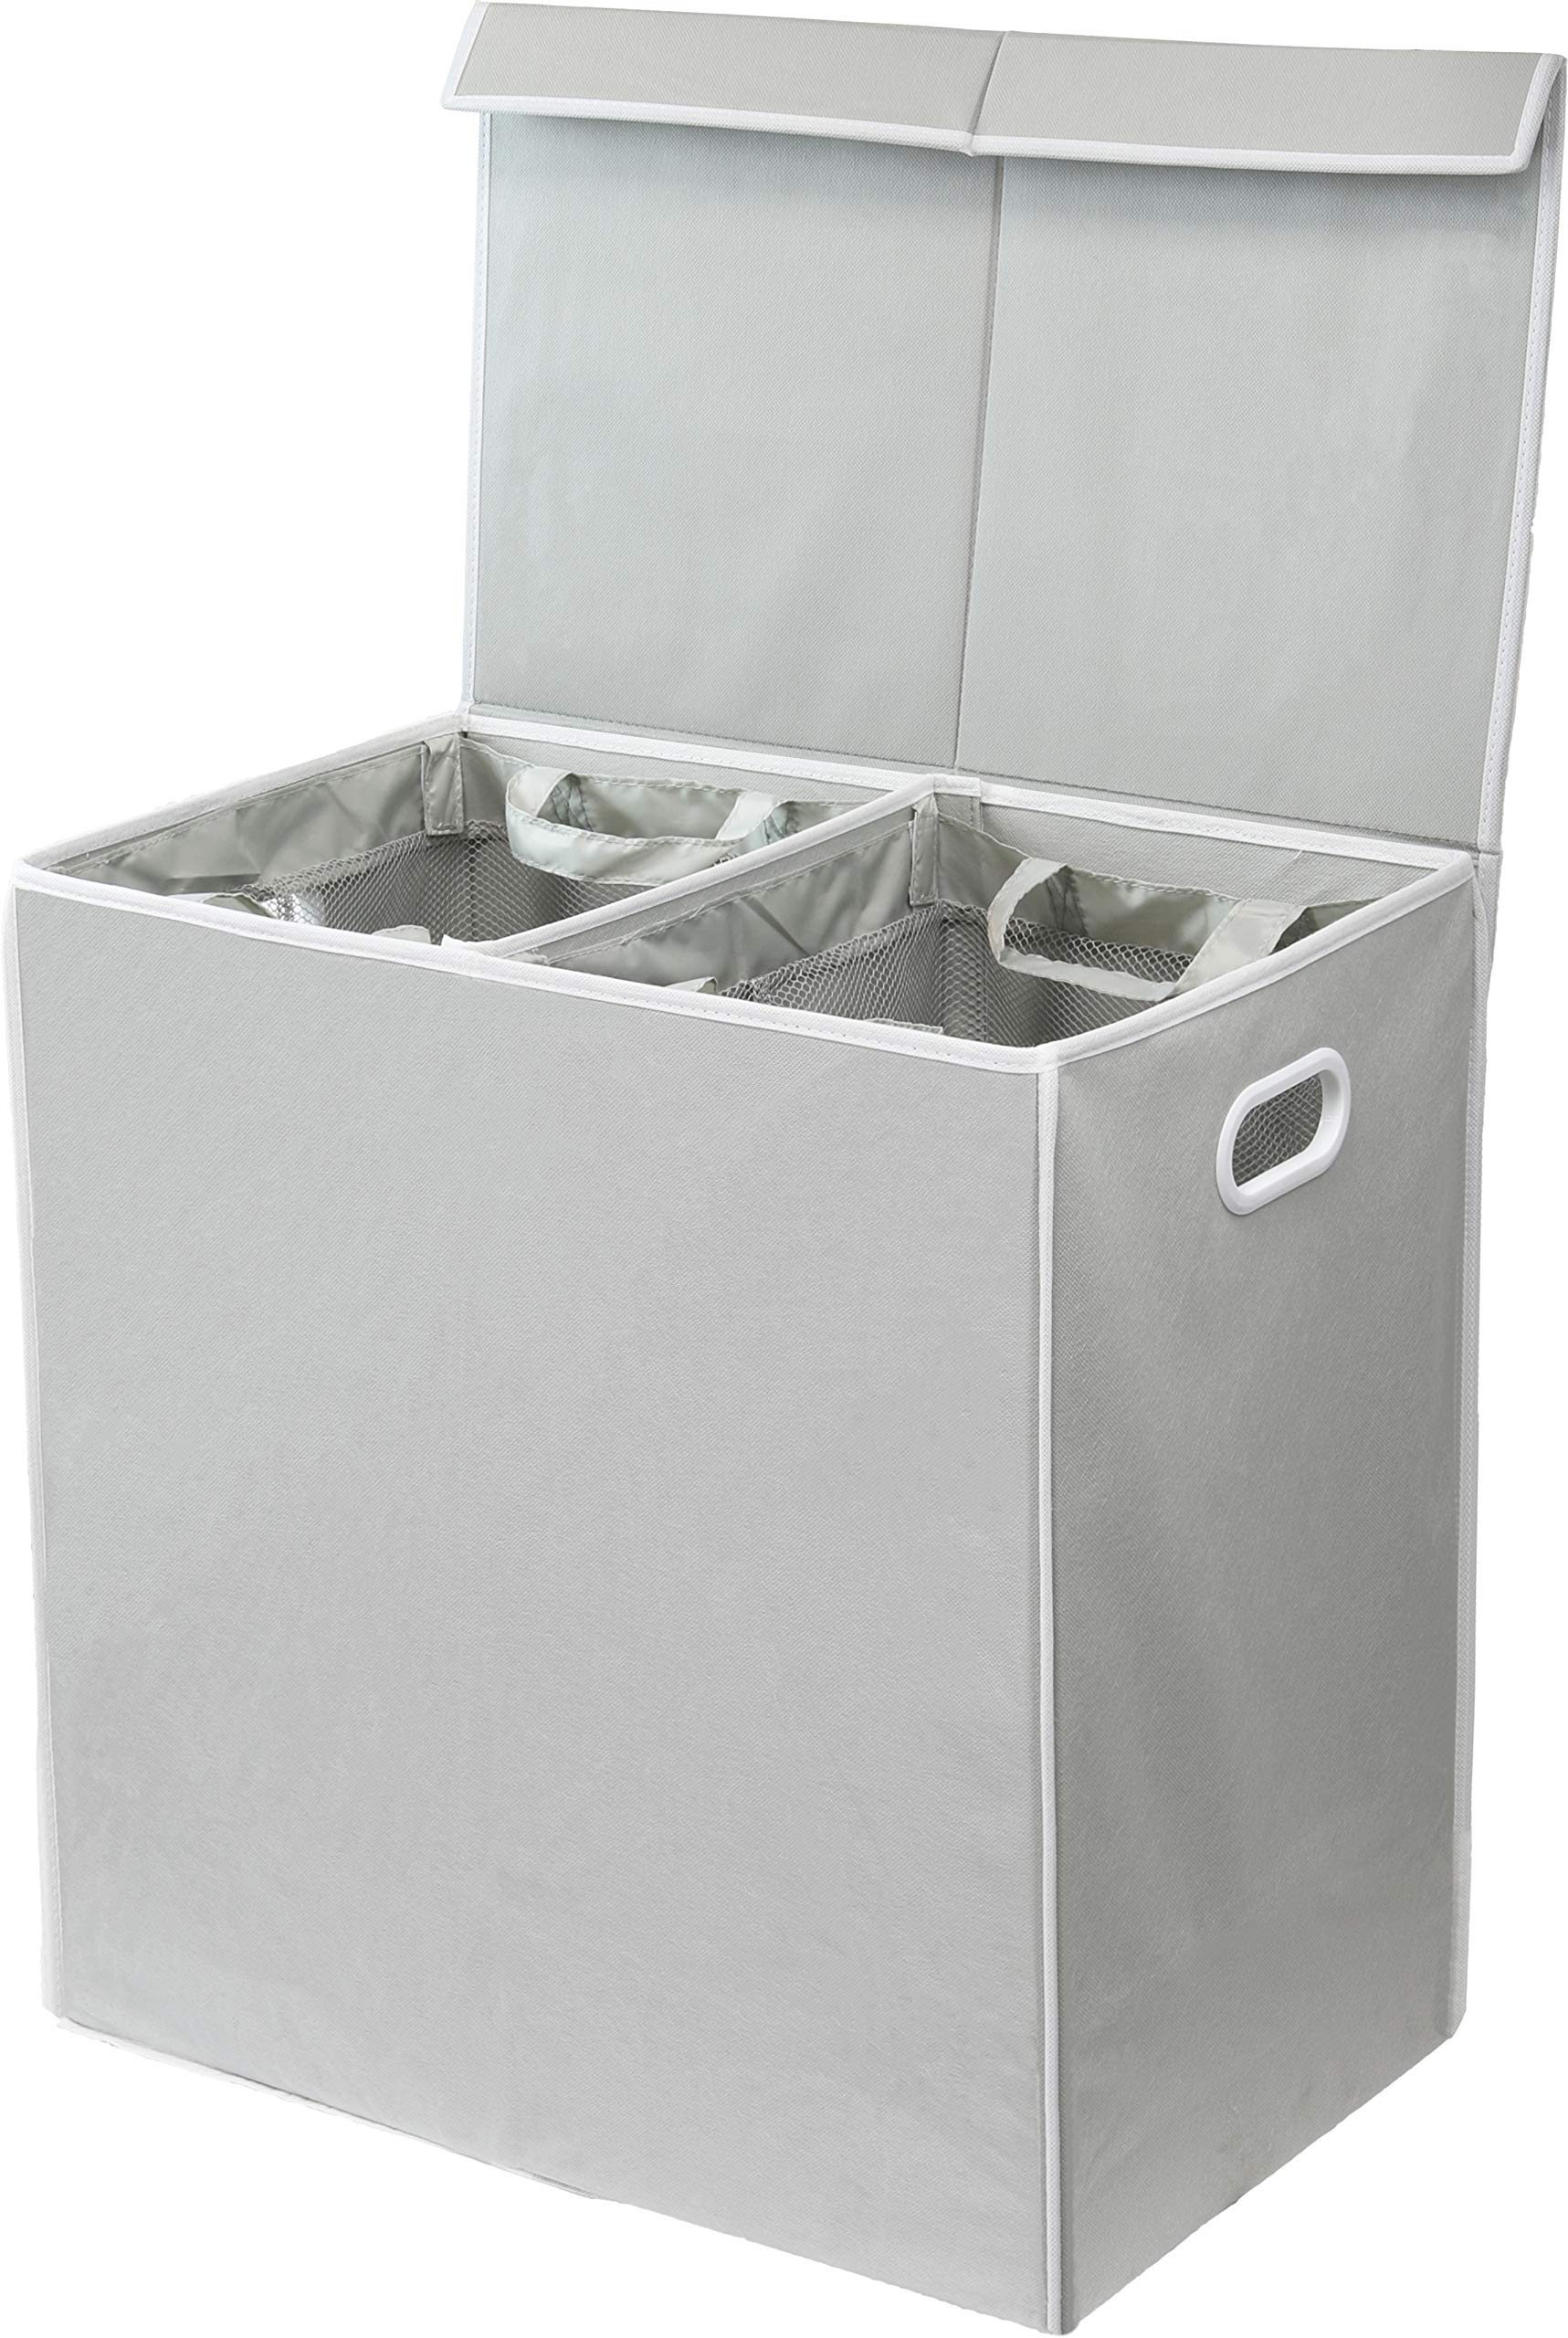 Simplehouseware Double Laundry Hamper with Lid and Removable Laundry Bags, Grey by Simple Houseware